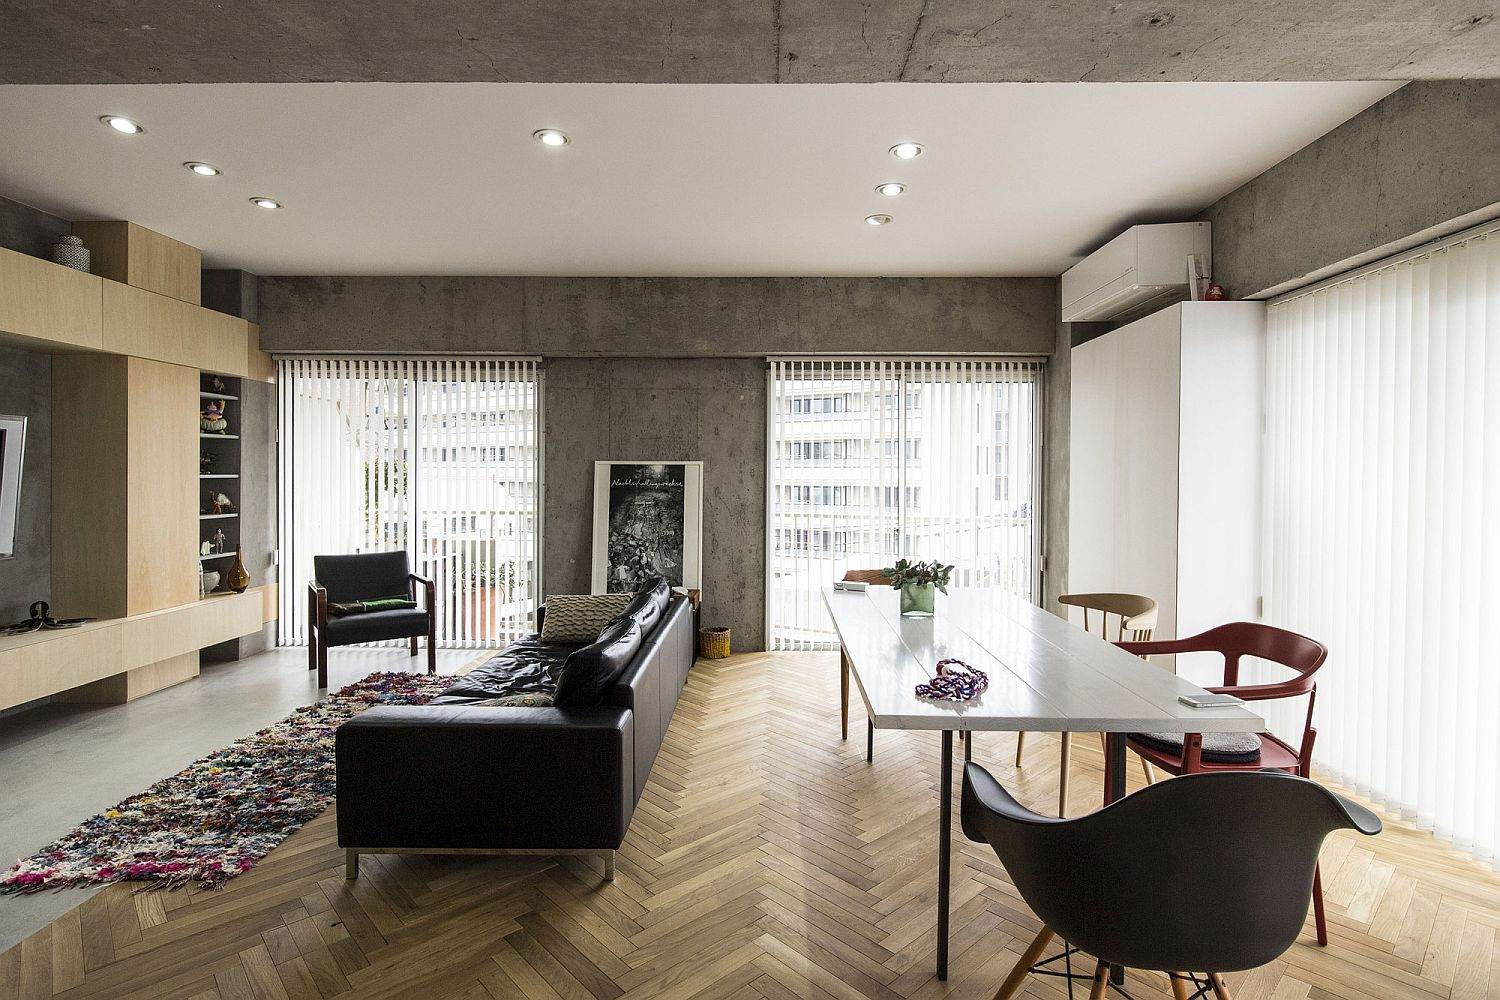 Herringbone-pattern-flooring-coupled-with-polished-surfaces-wood-and-concrete